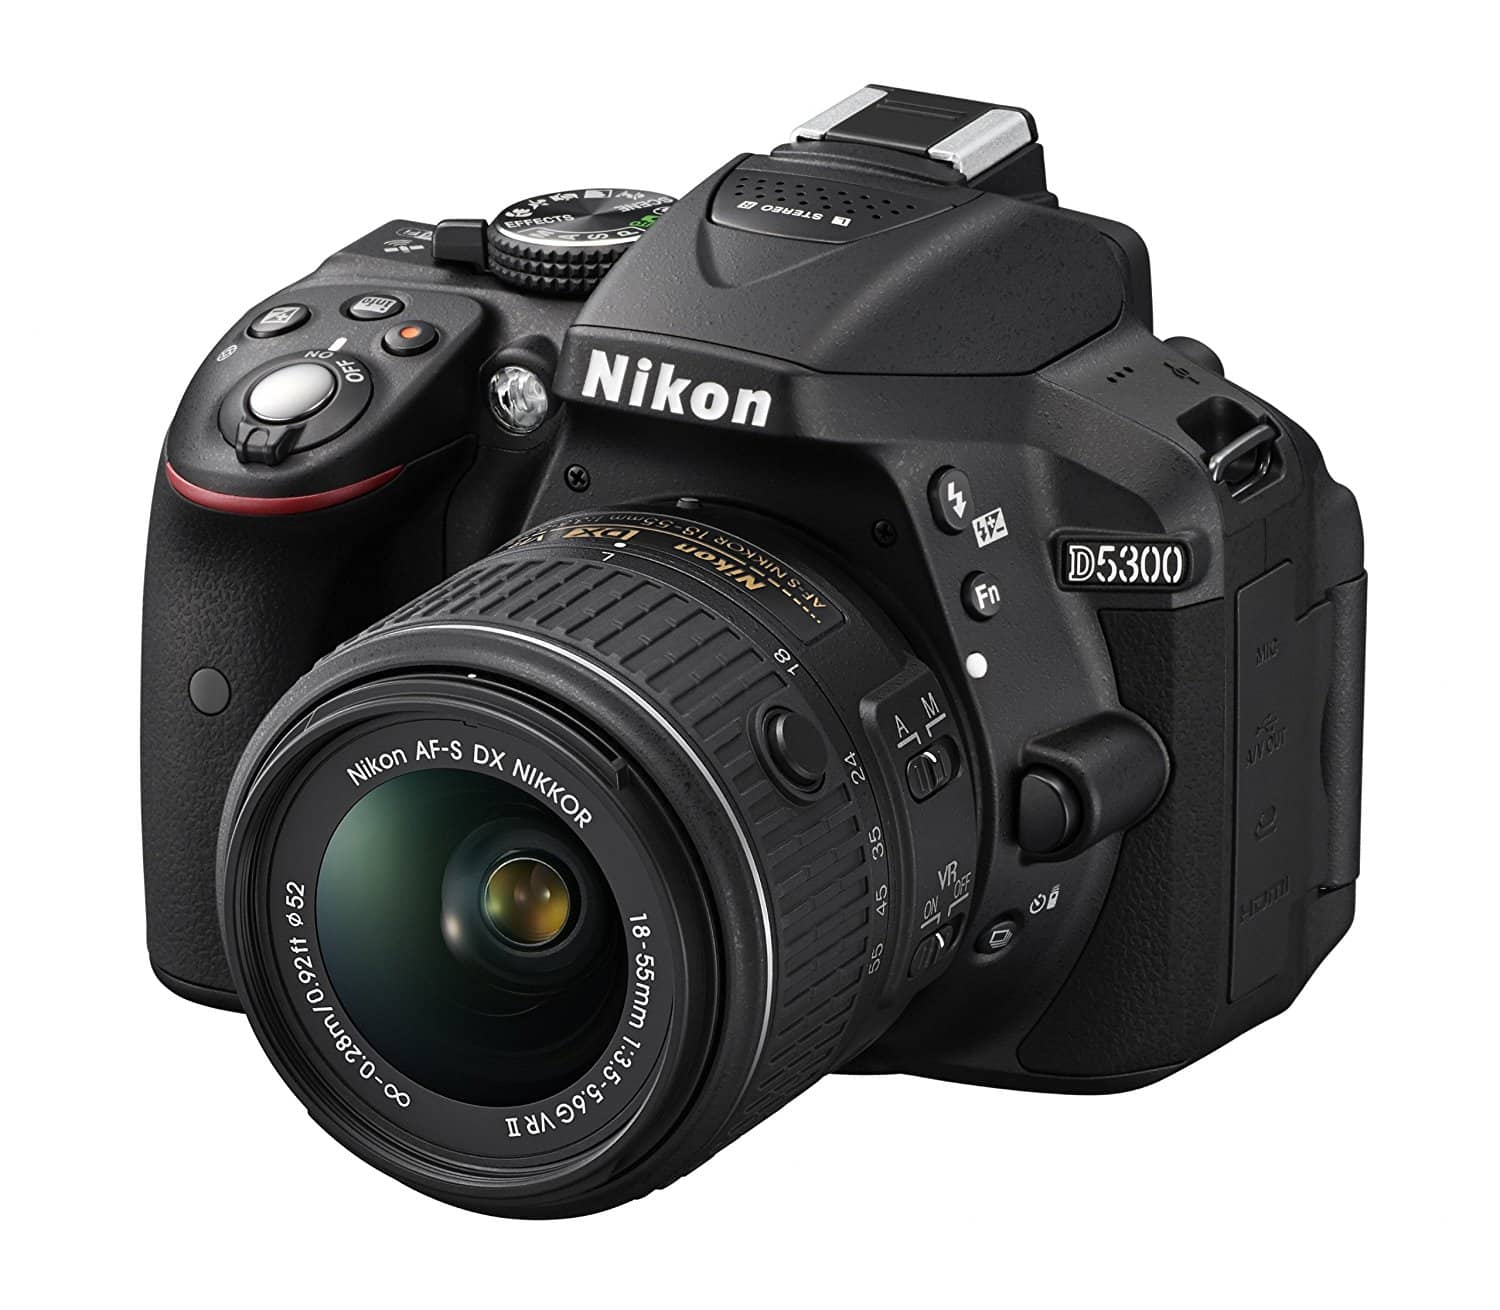 Nikon DSLR Comparison: Which Is The Best Nikon DSLR In 2020?